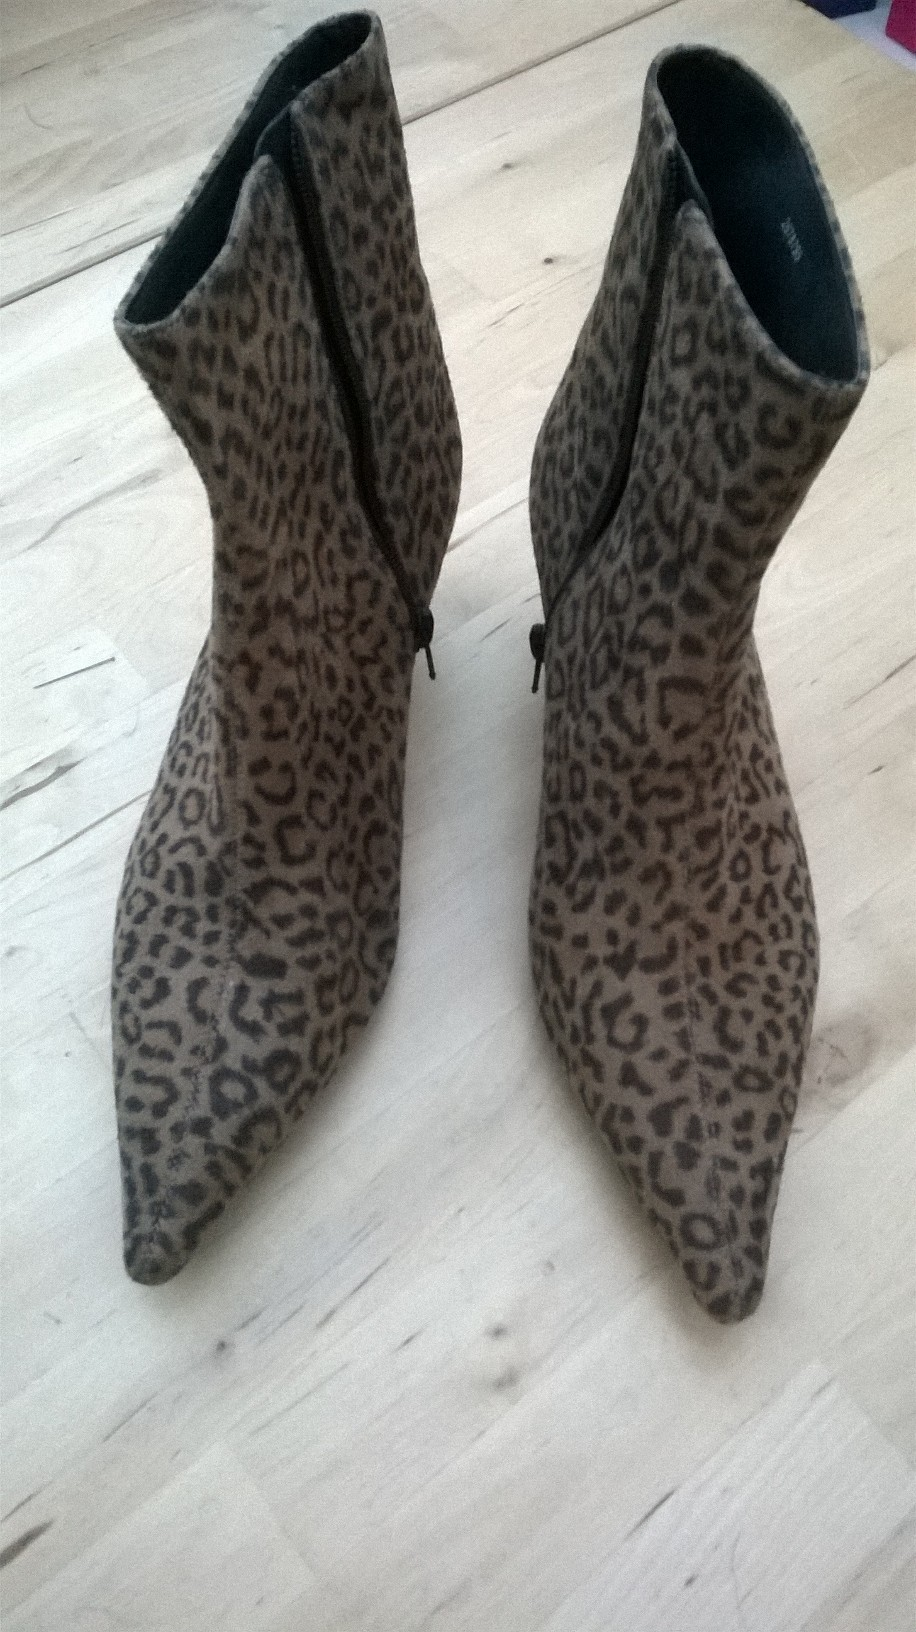 My leopard print ankle boots